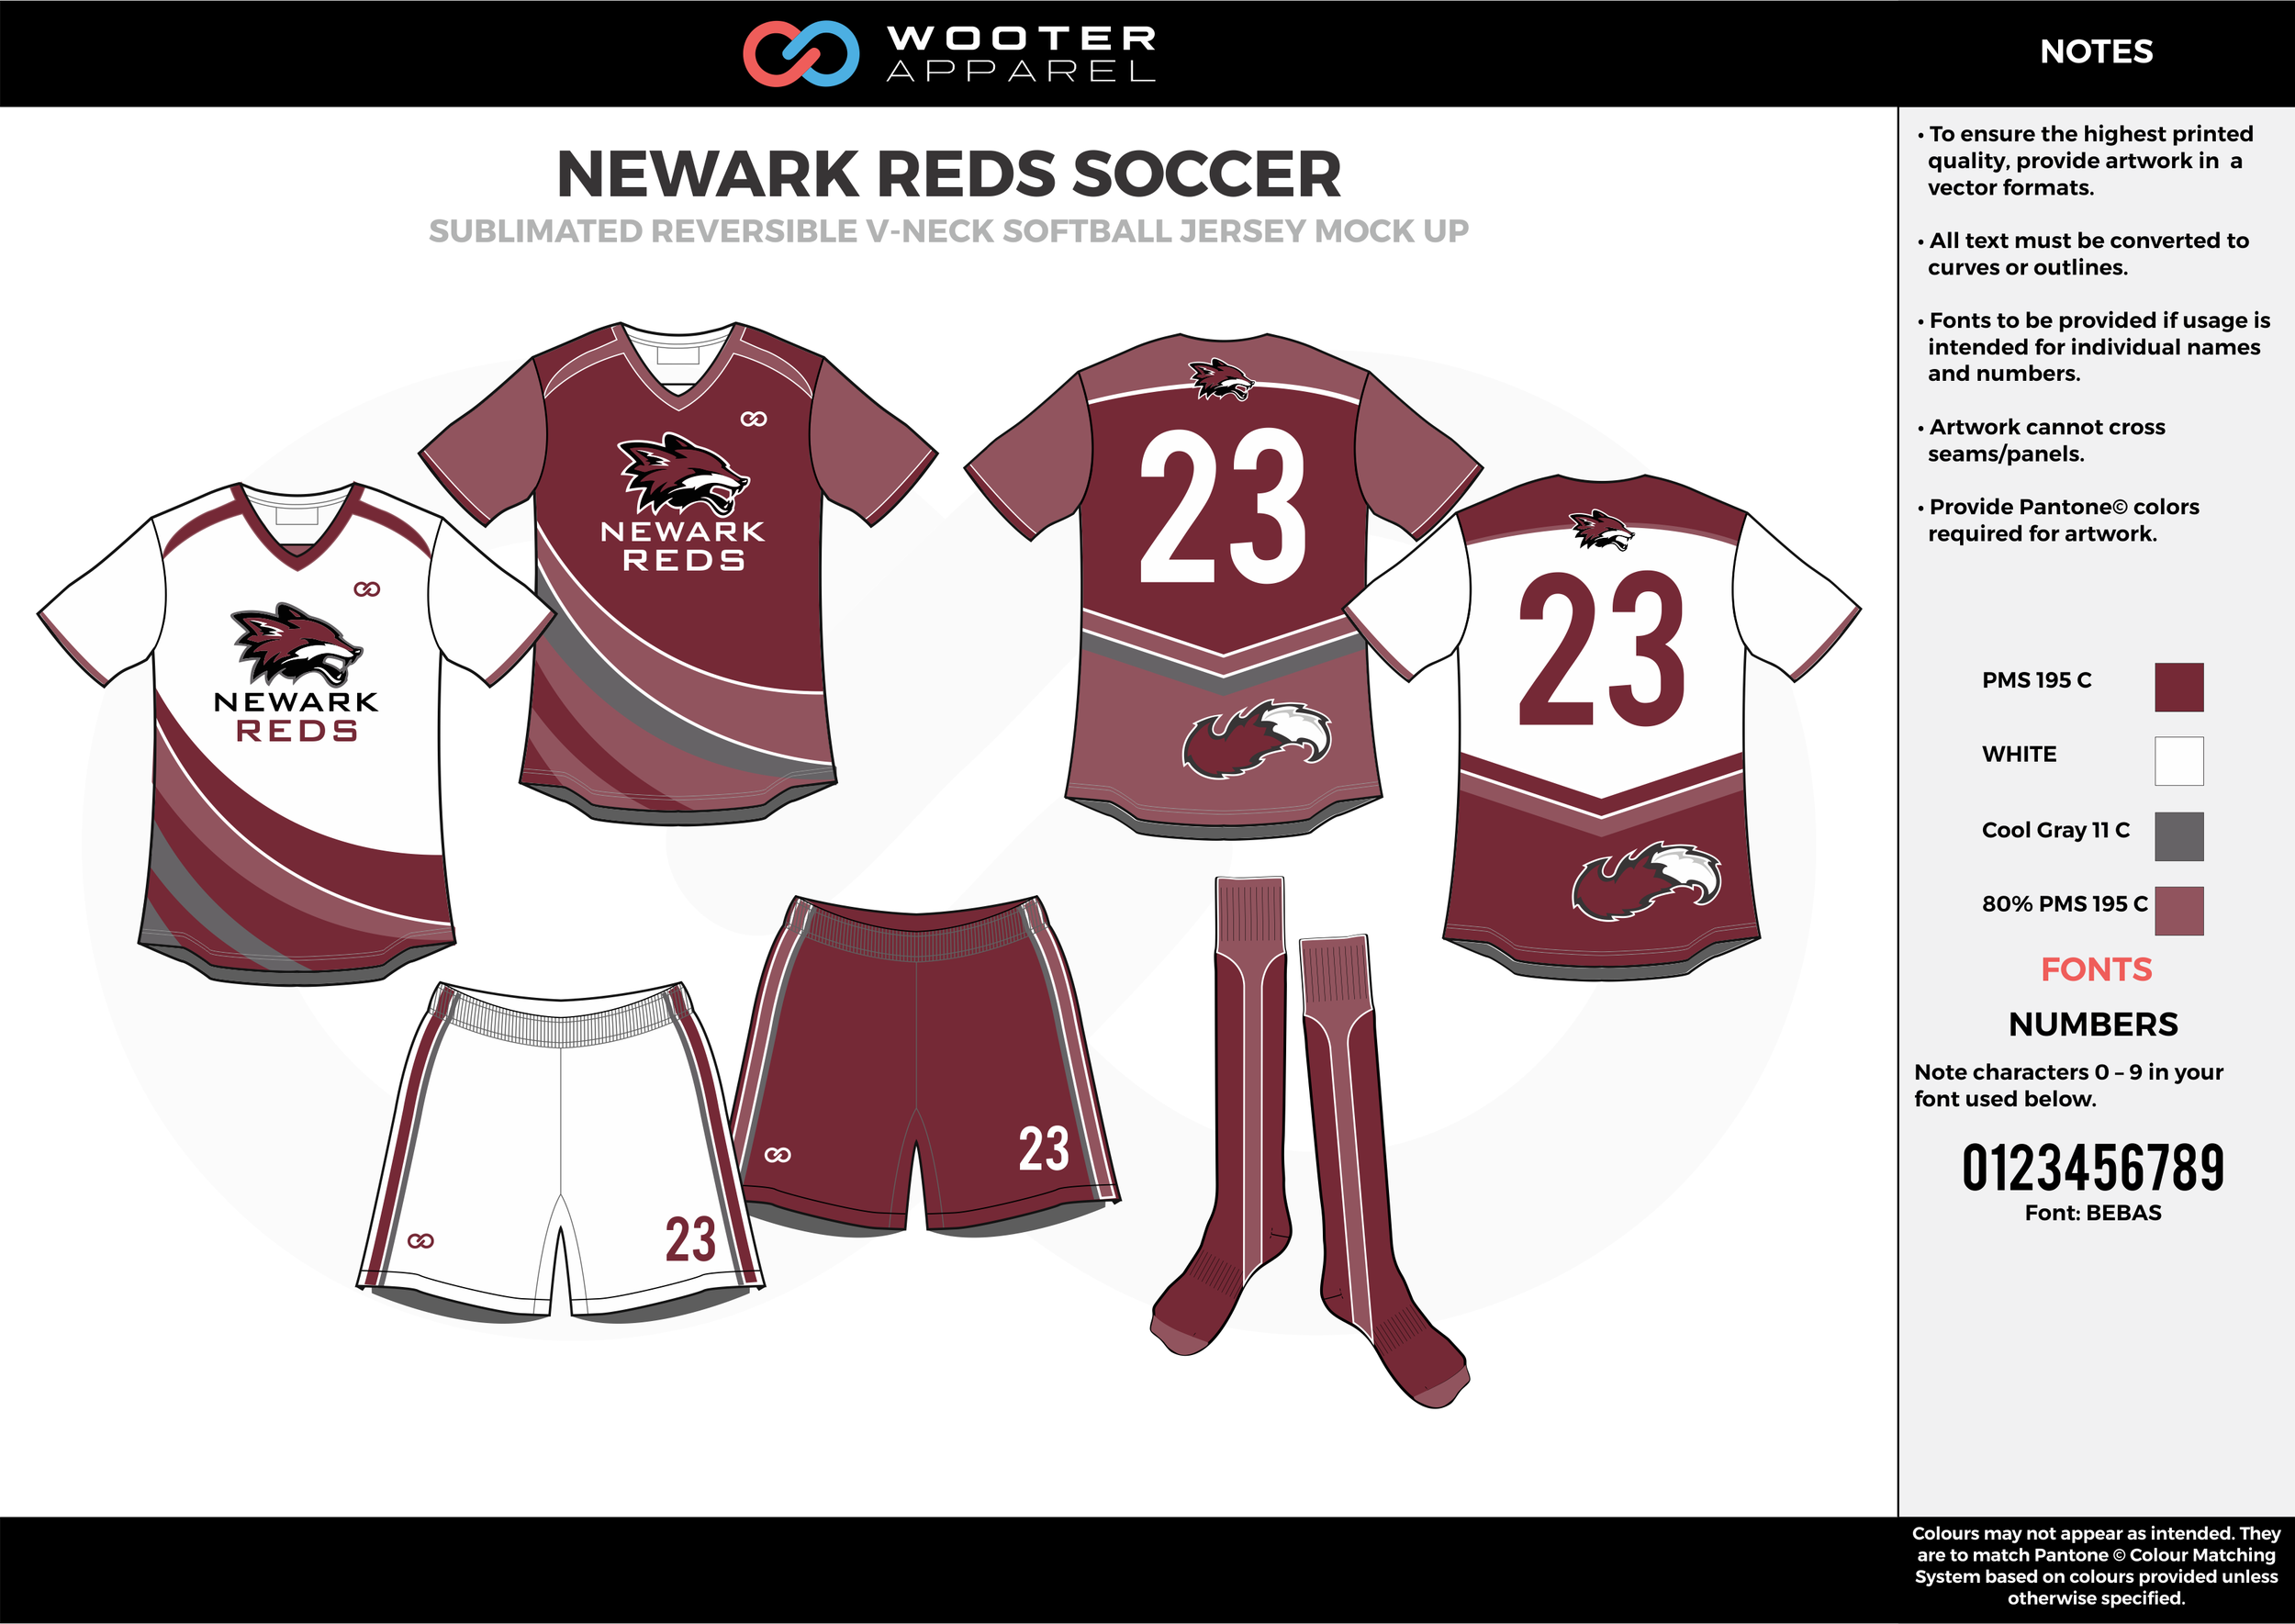 NEWARK REDS wine red white cool gray custom sublimated soccer uniform jersey shirt shorts socks